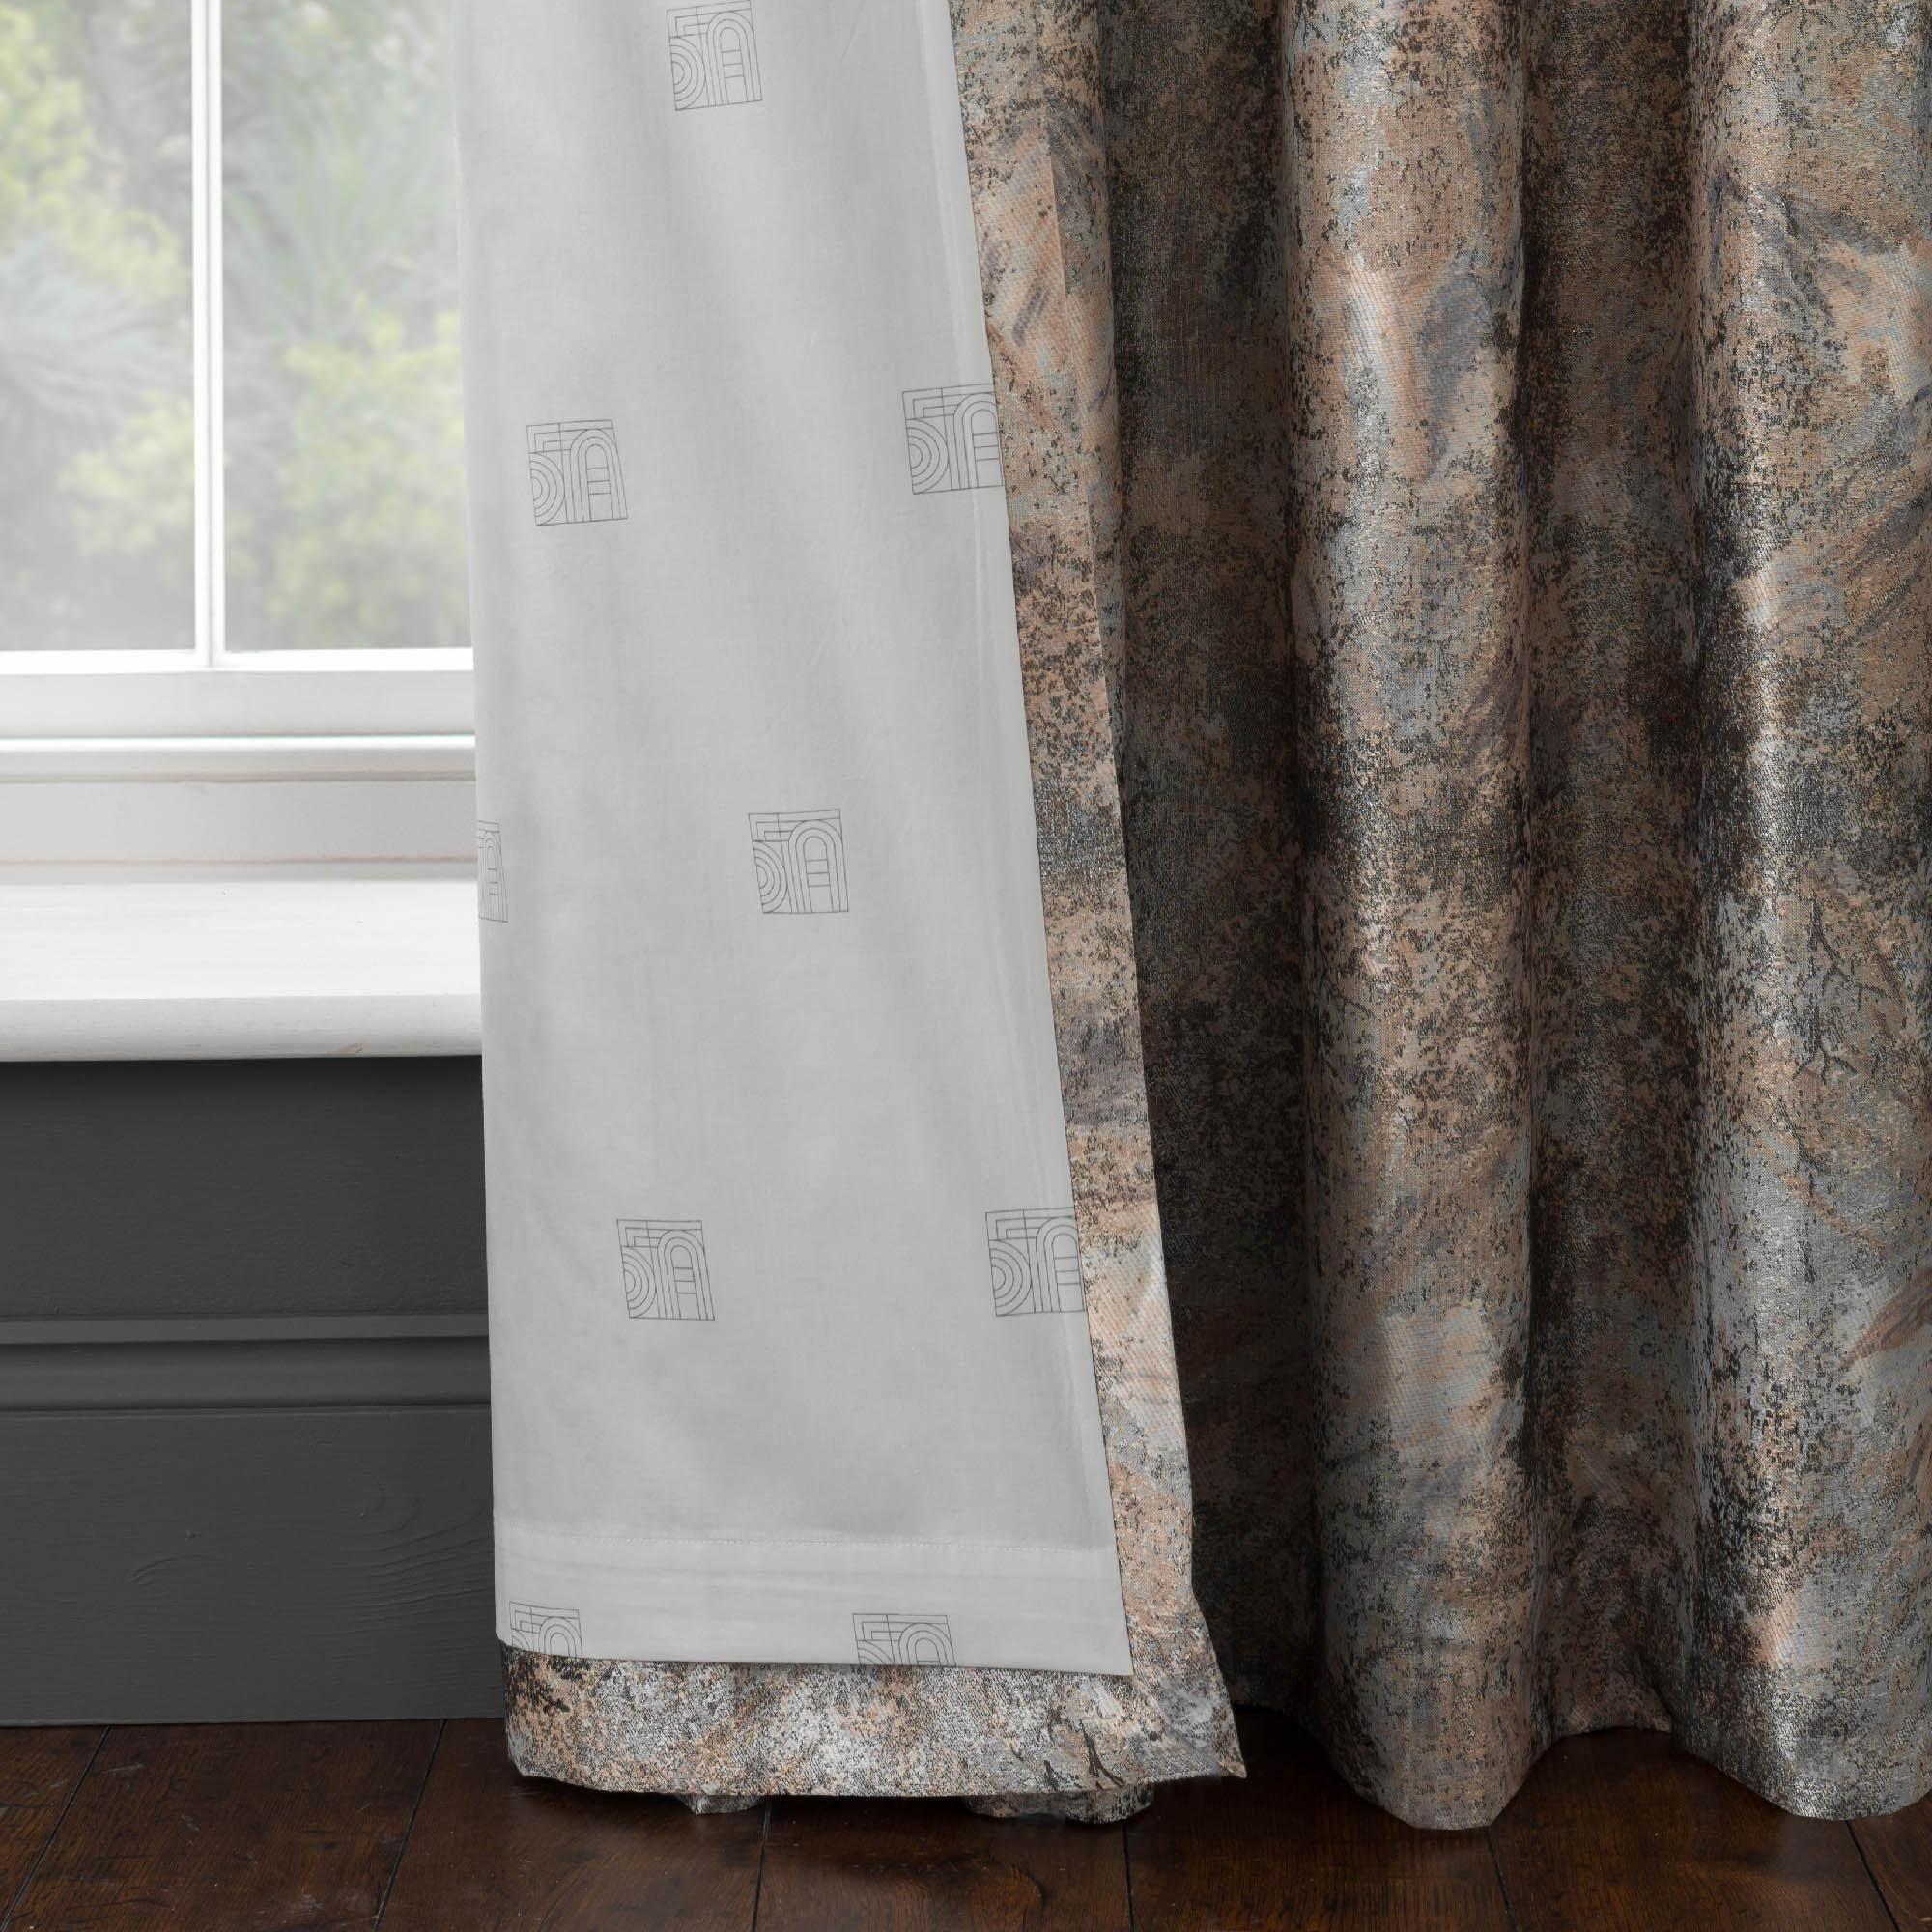 Available in a range of widths and drops, this pair of luxurious Serenity curtains from our premium 5A Fifth Avenue range are fashioned with a quality woven jacquard texture in soft gold tones, are fully lined and complete with a modern eyelet header.